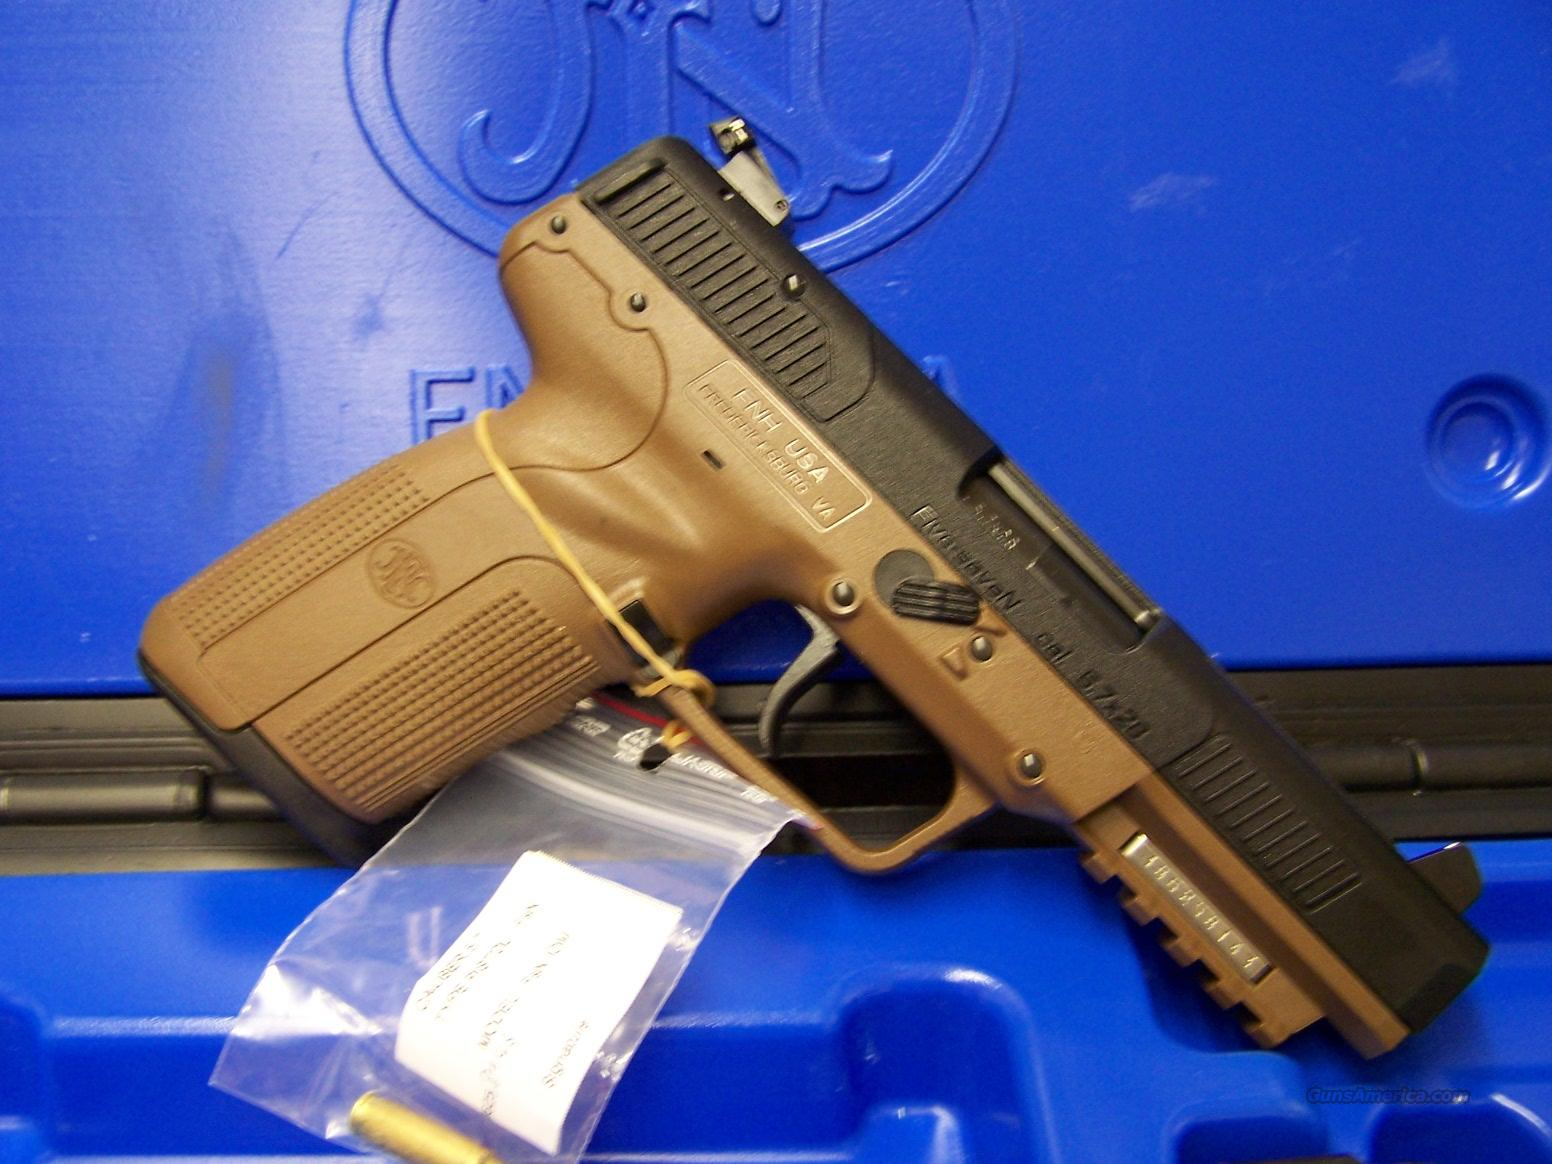 "FNH Five-Seven MK II 5.7 x 28mm FDE 4 3/4"" adjustable sights 3-20 round mags (3868929350)  Guns > Pistols > FNH - Fabrique Nationale (FN) Pistols > FiveSeven"